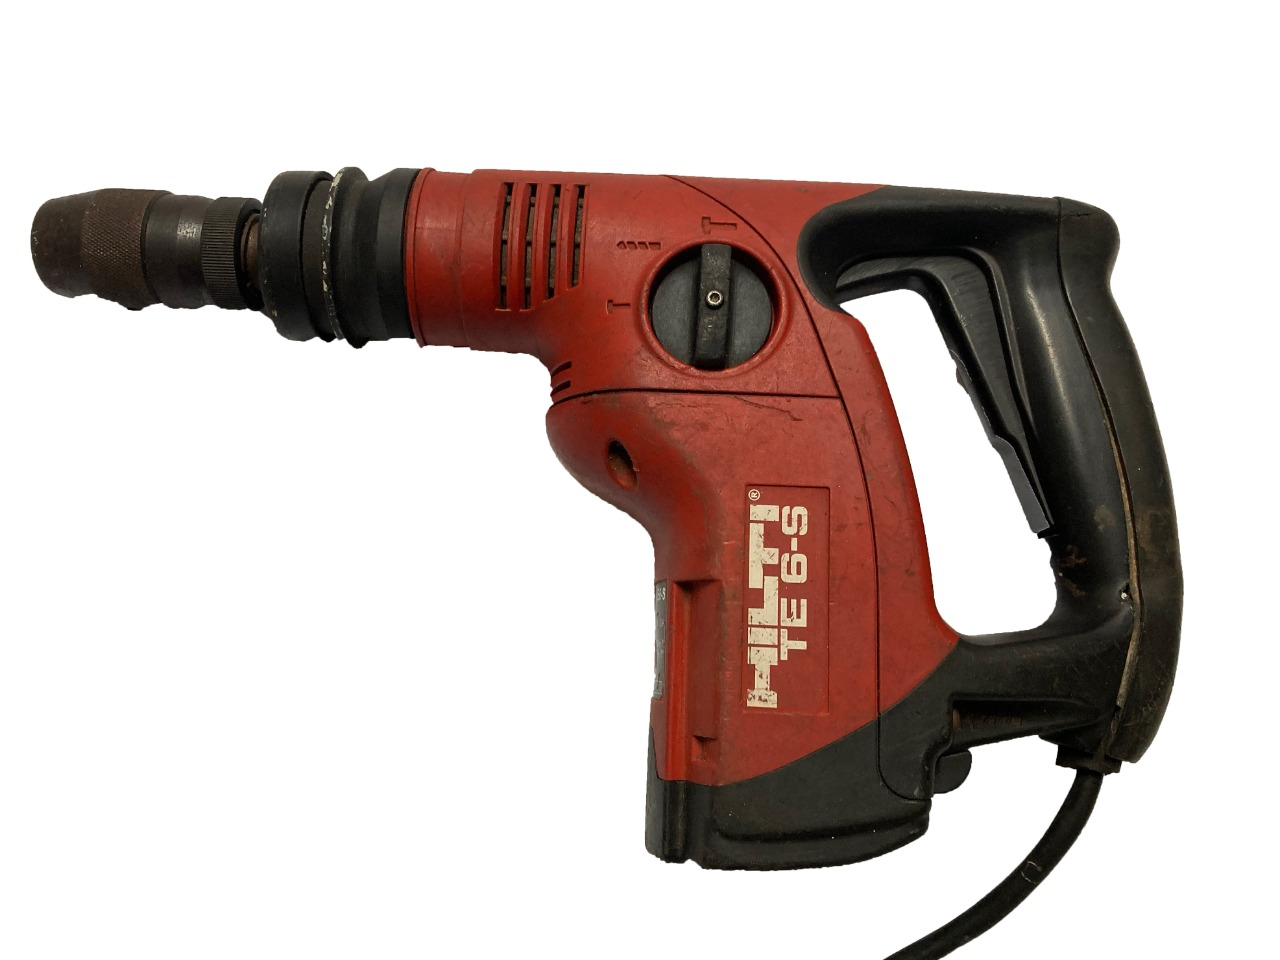 Hilti Rotary Hammer Drill TE6-S for Sale!